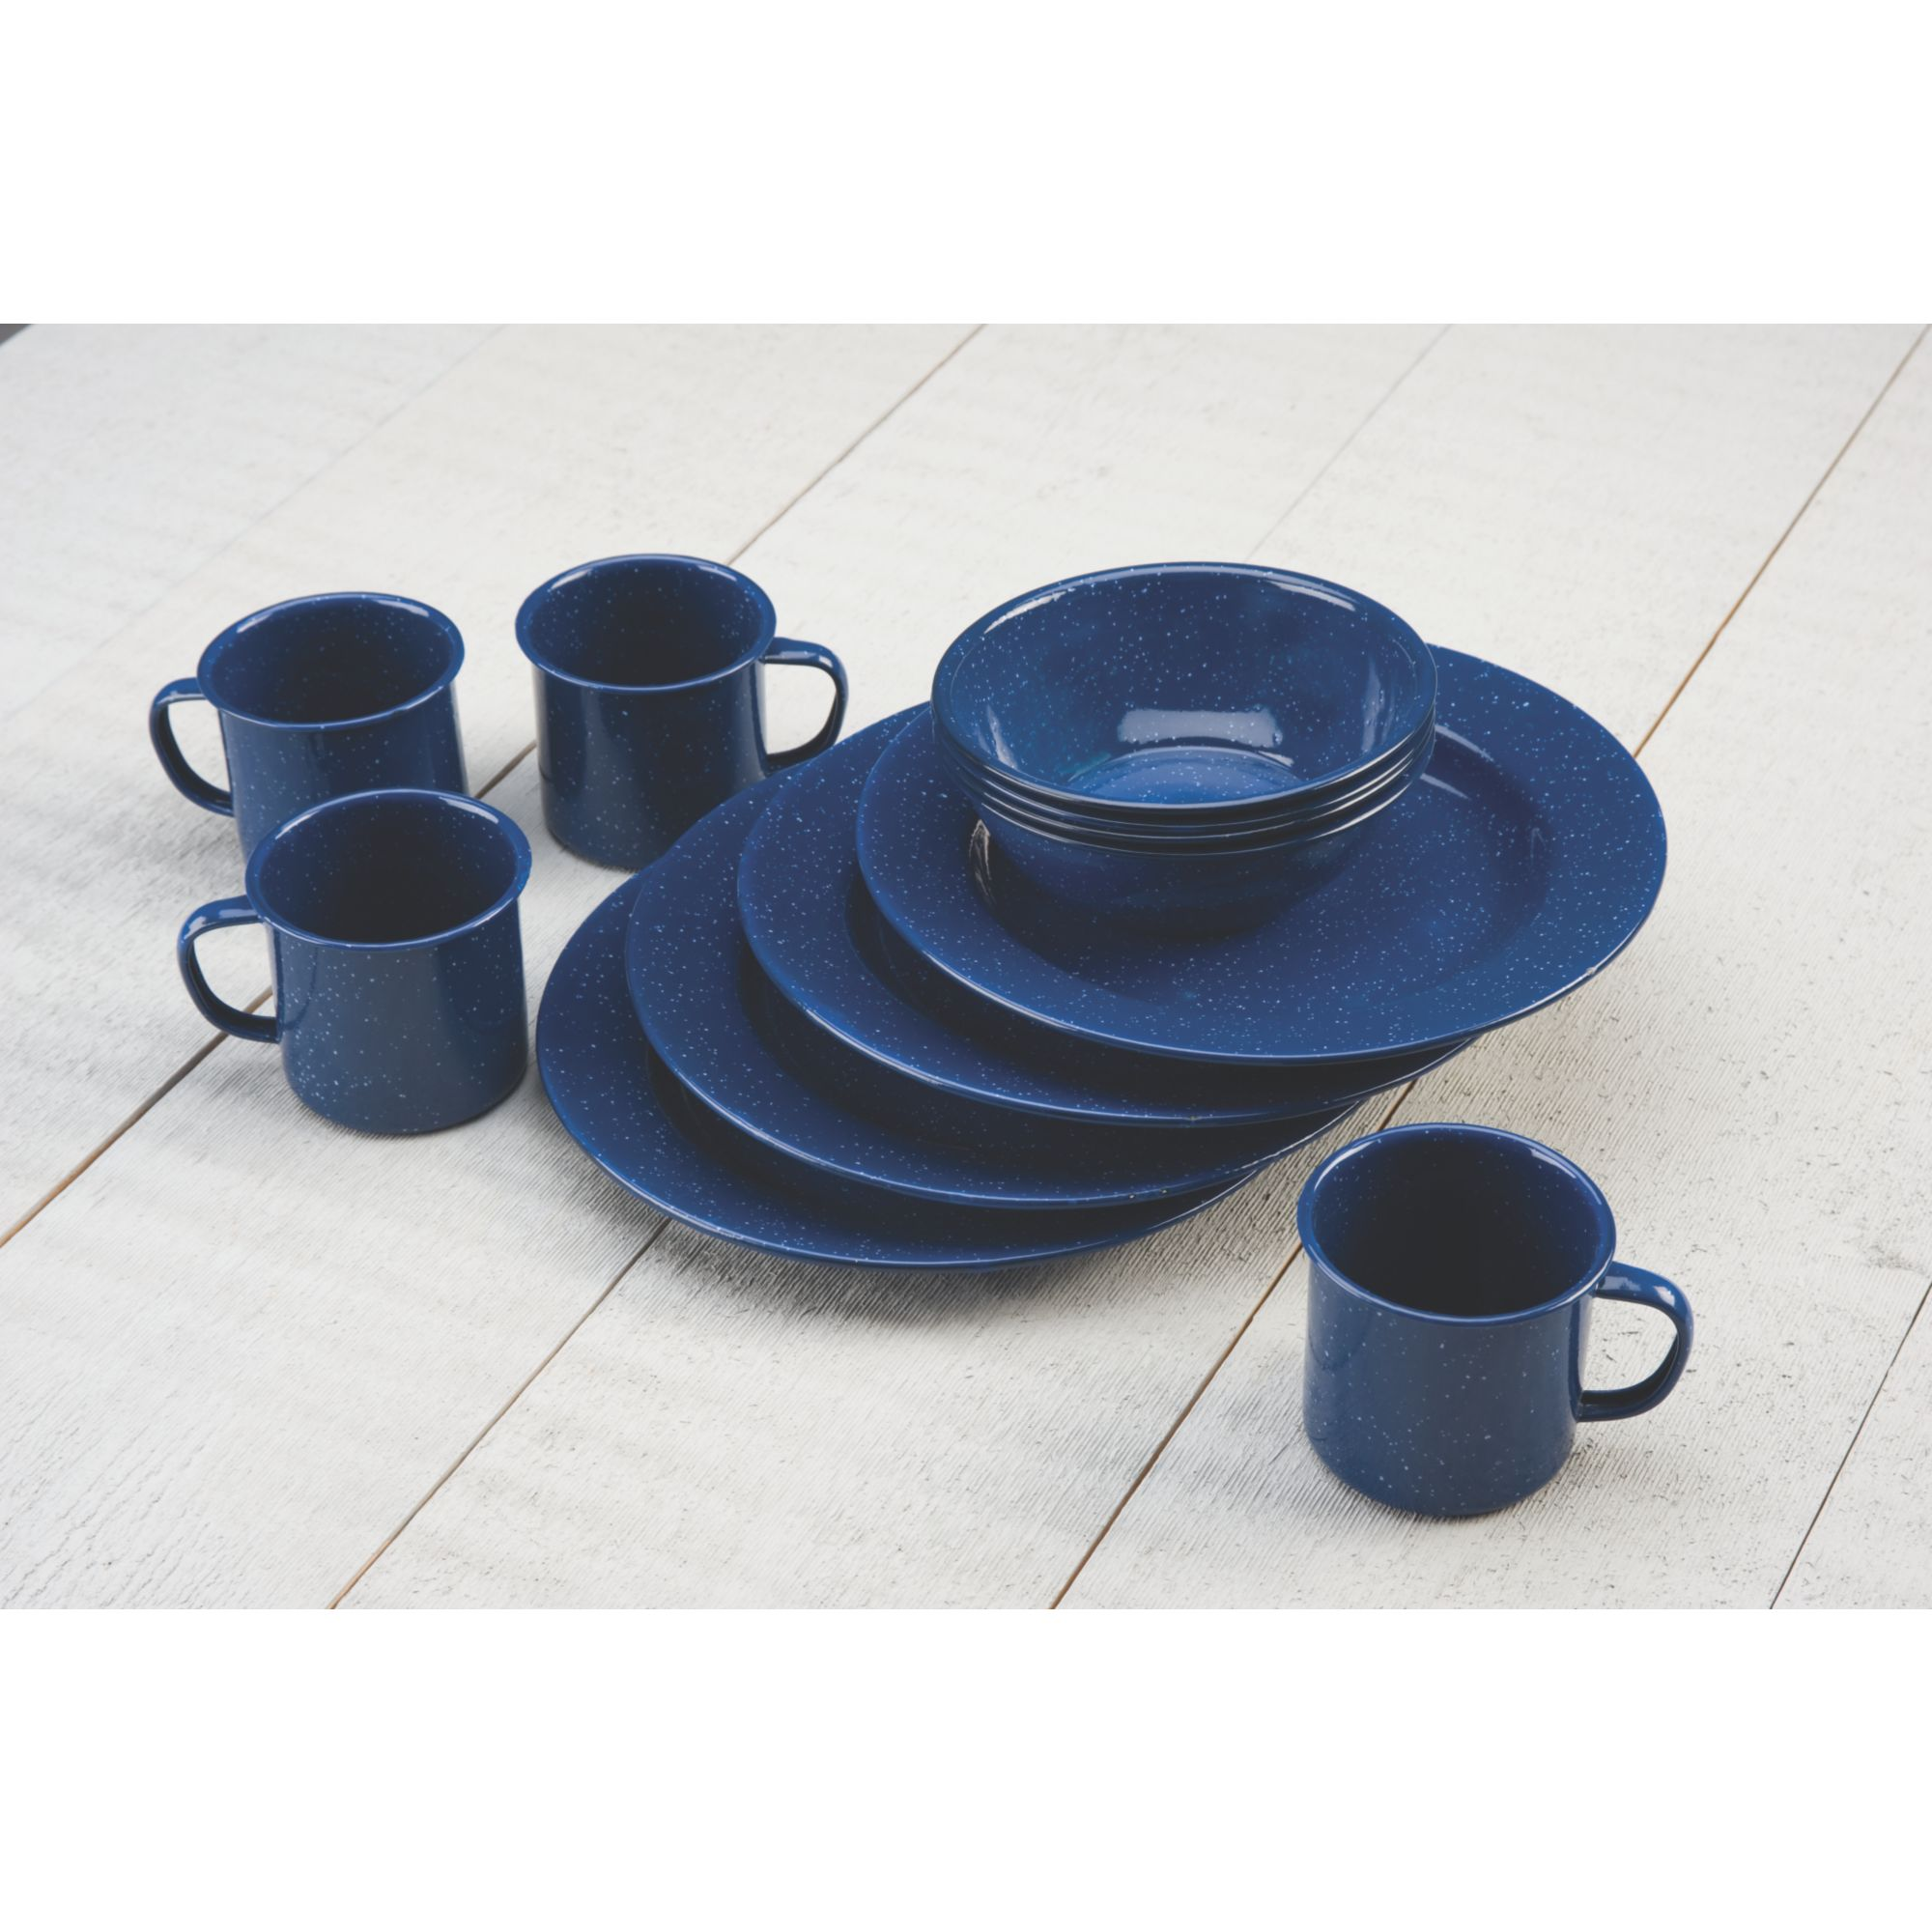 12 PIECE ENAMEL DINNERWARE SET